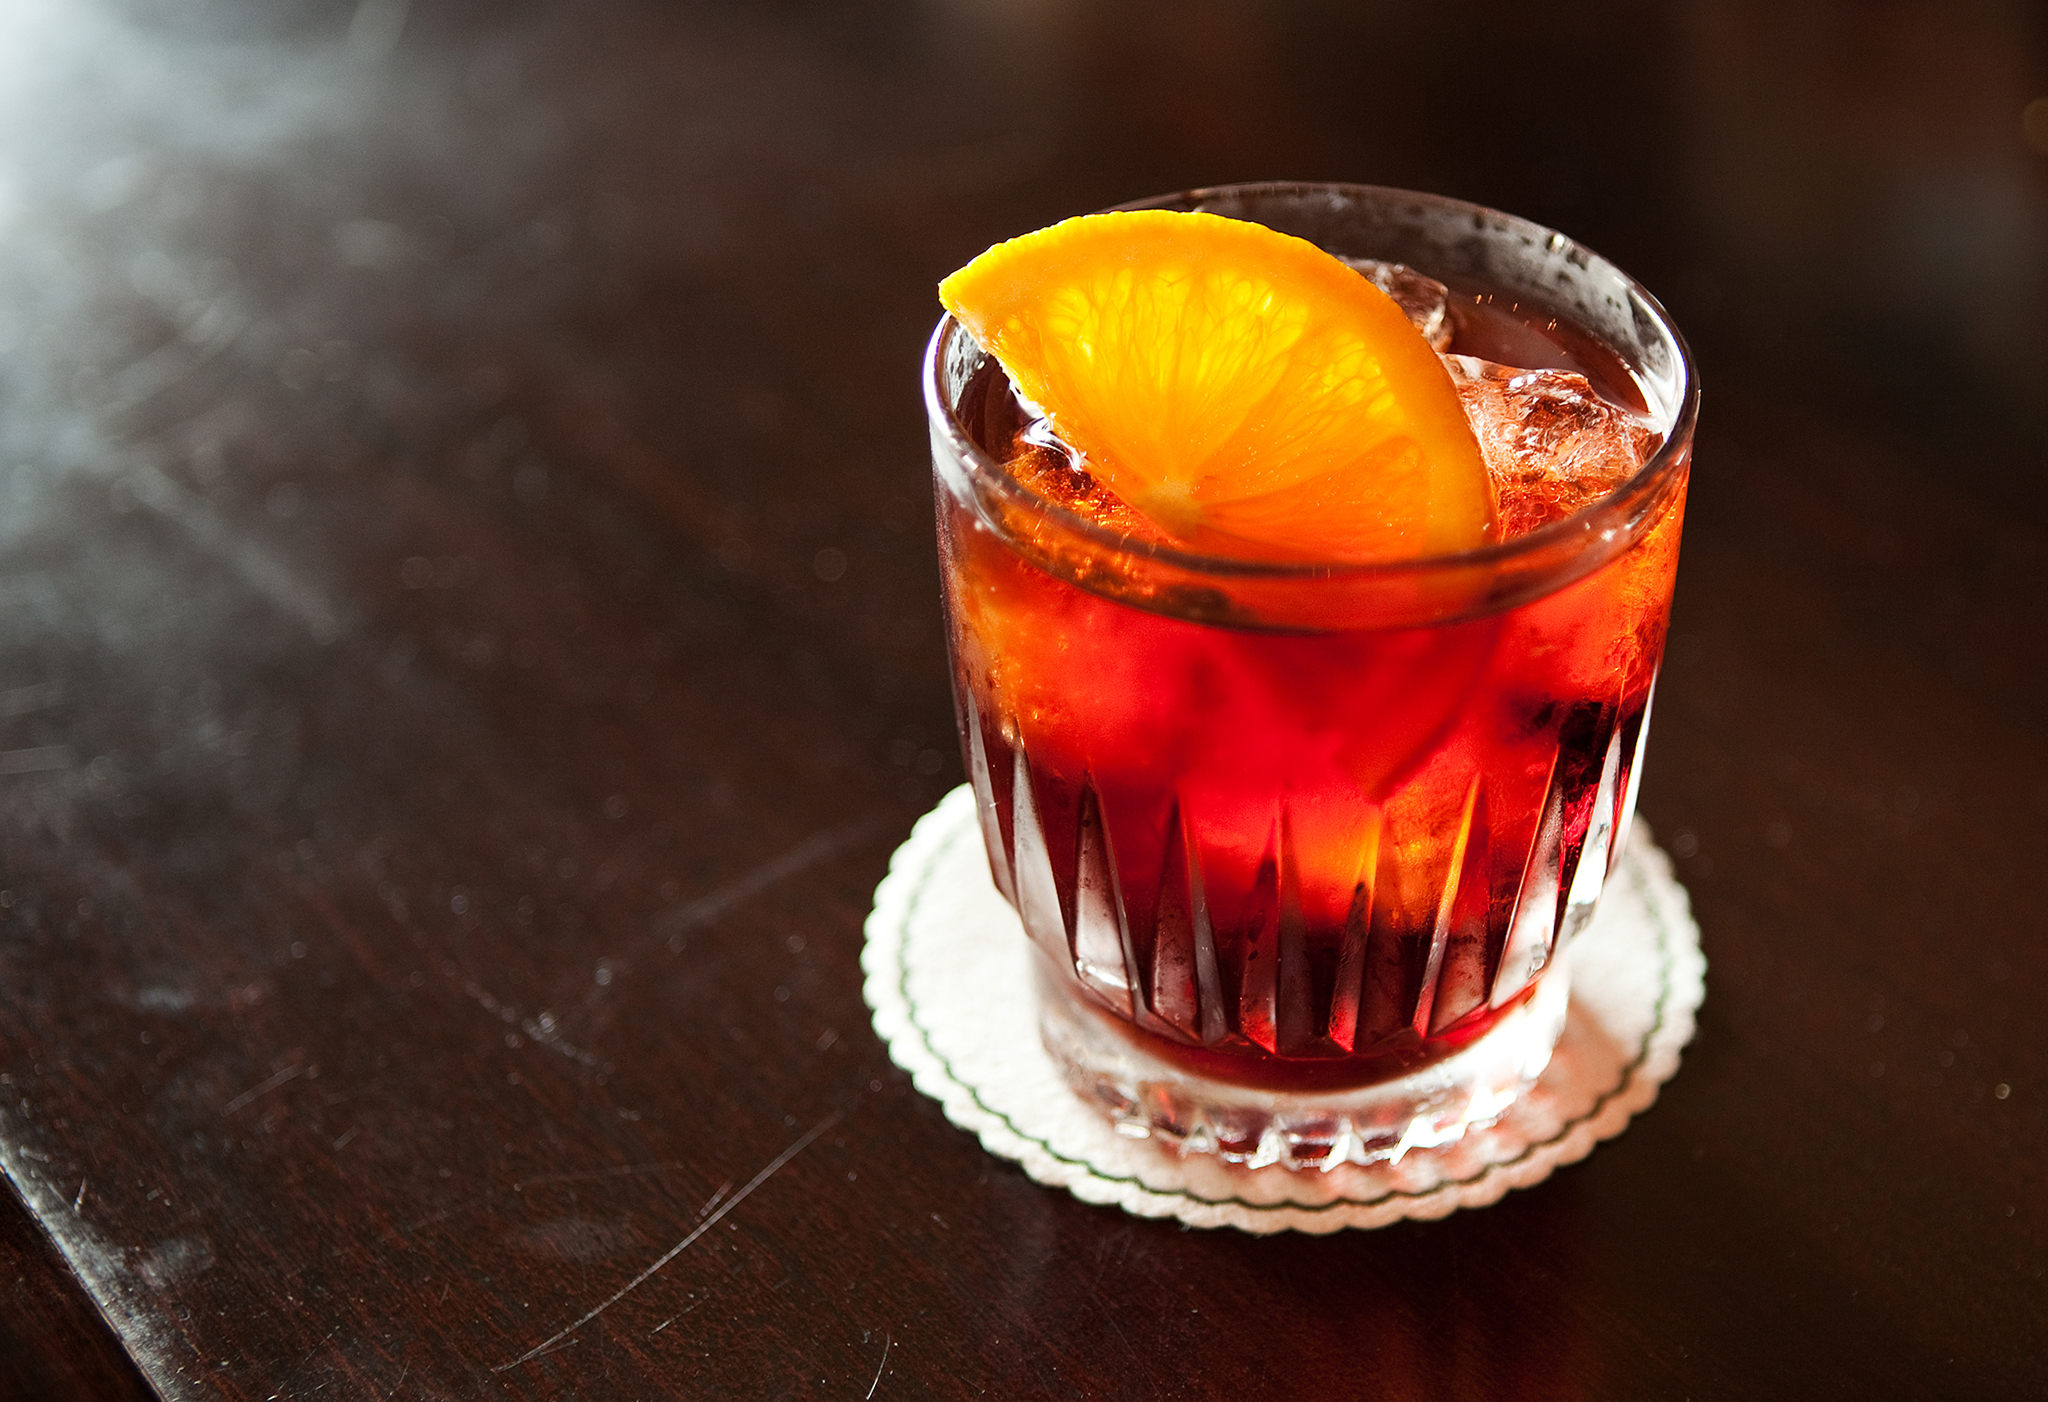 Negroni at The Black Cat